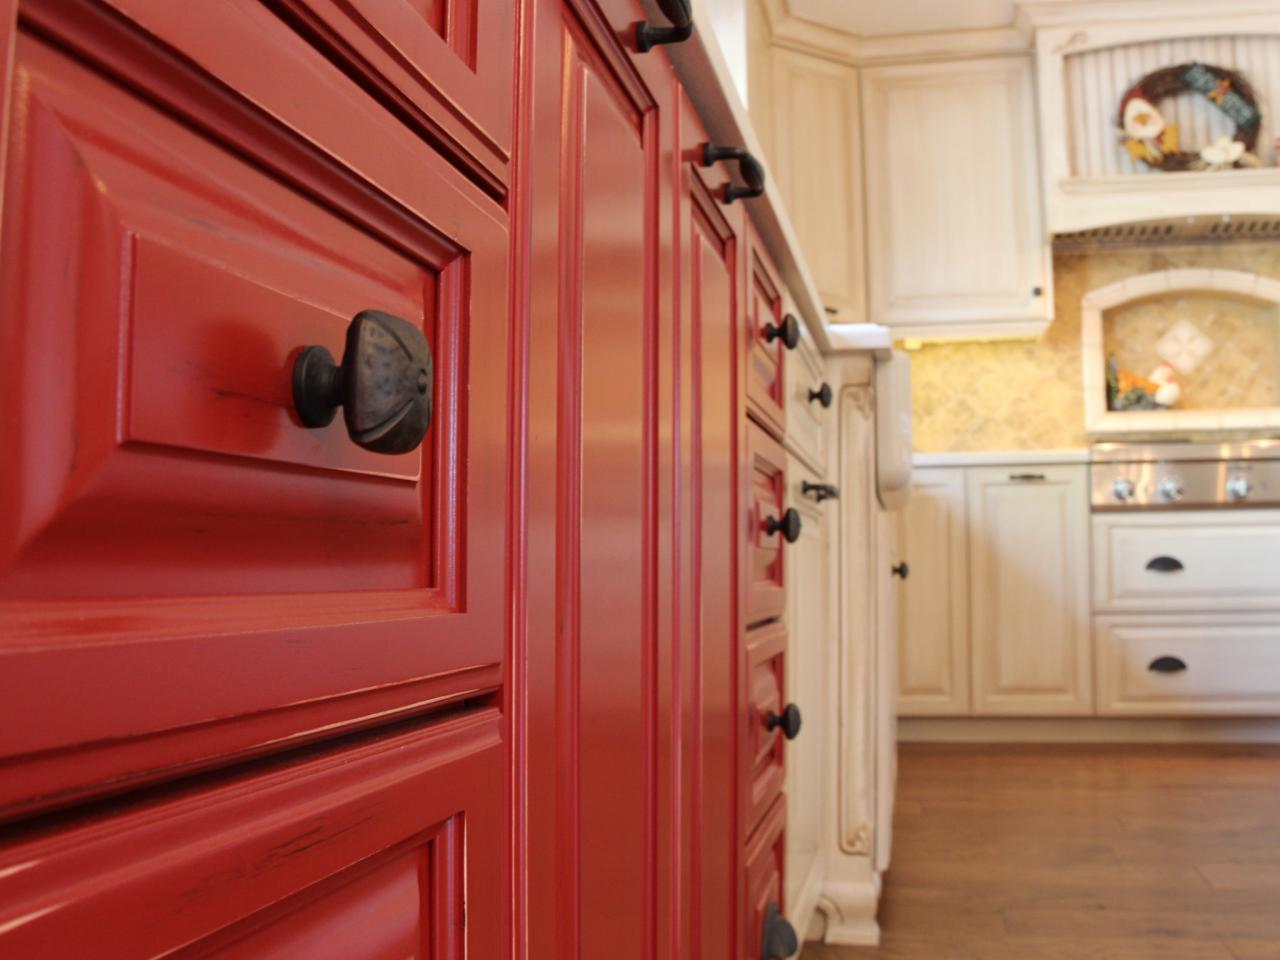 Kitchen Cabinets Red Red Kitchen Cabinets With Oil Rubbed Bronze Knobs Hgtv